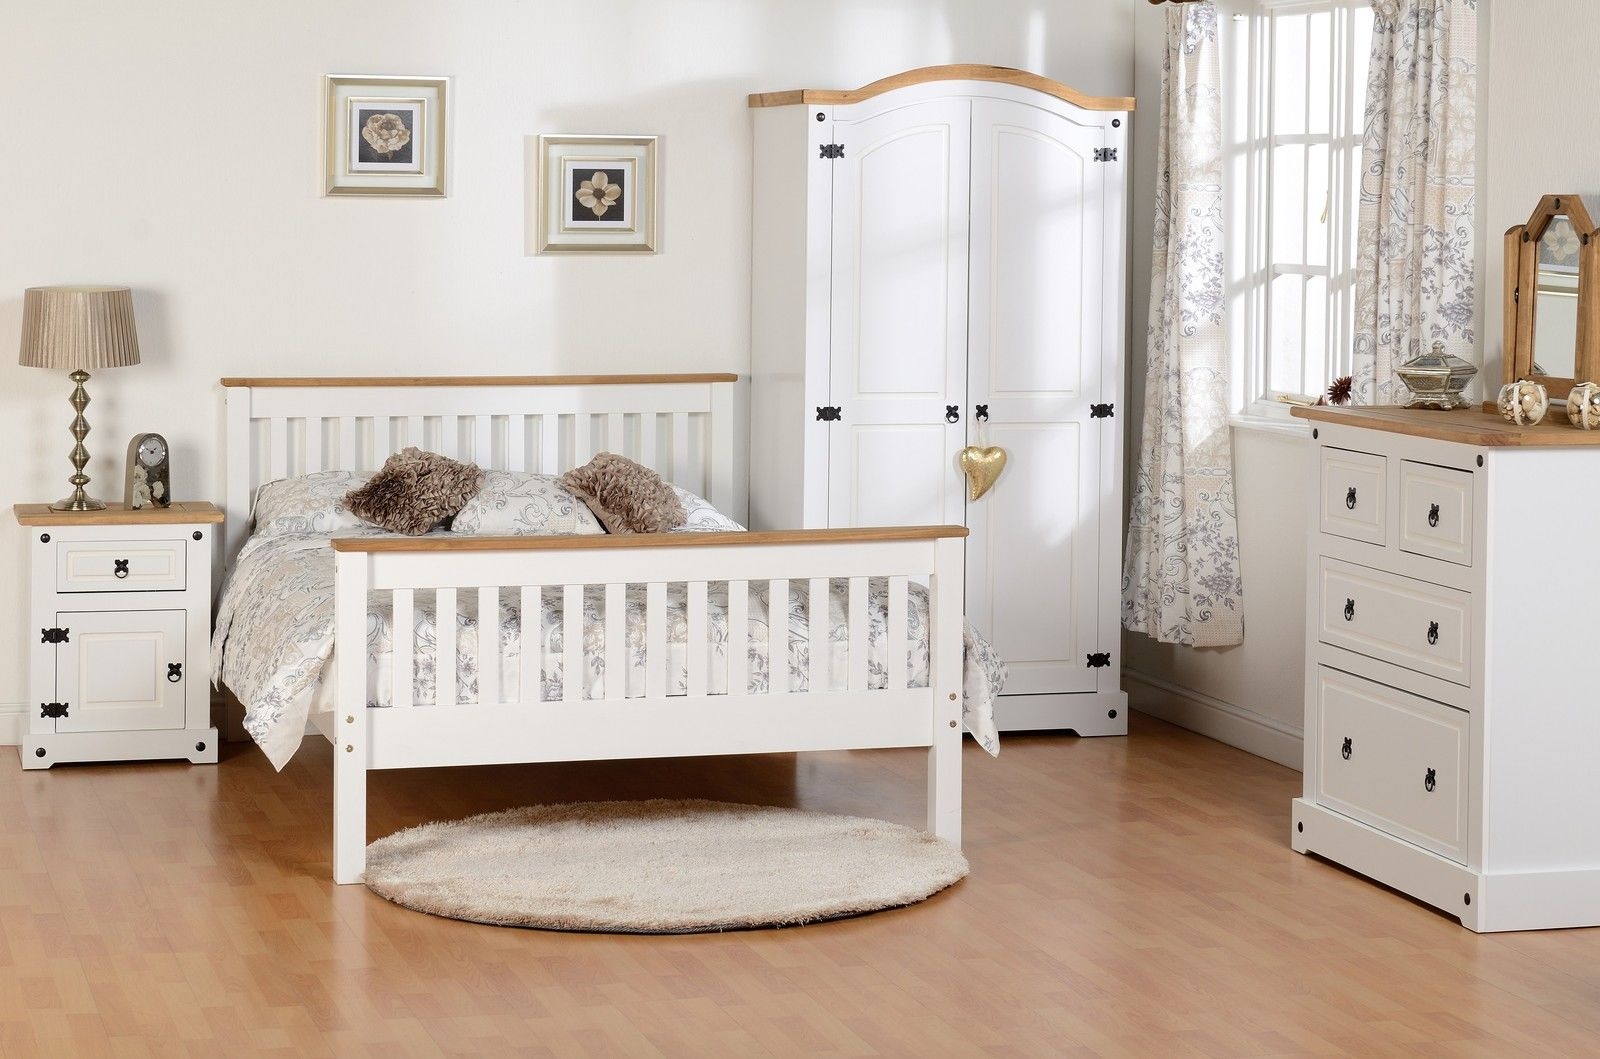 Seconique White Corona Bedroom Furniture Wardrobe Chest Dressing Table Bed